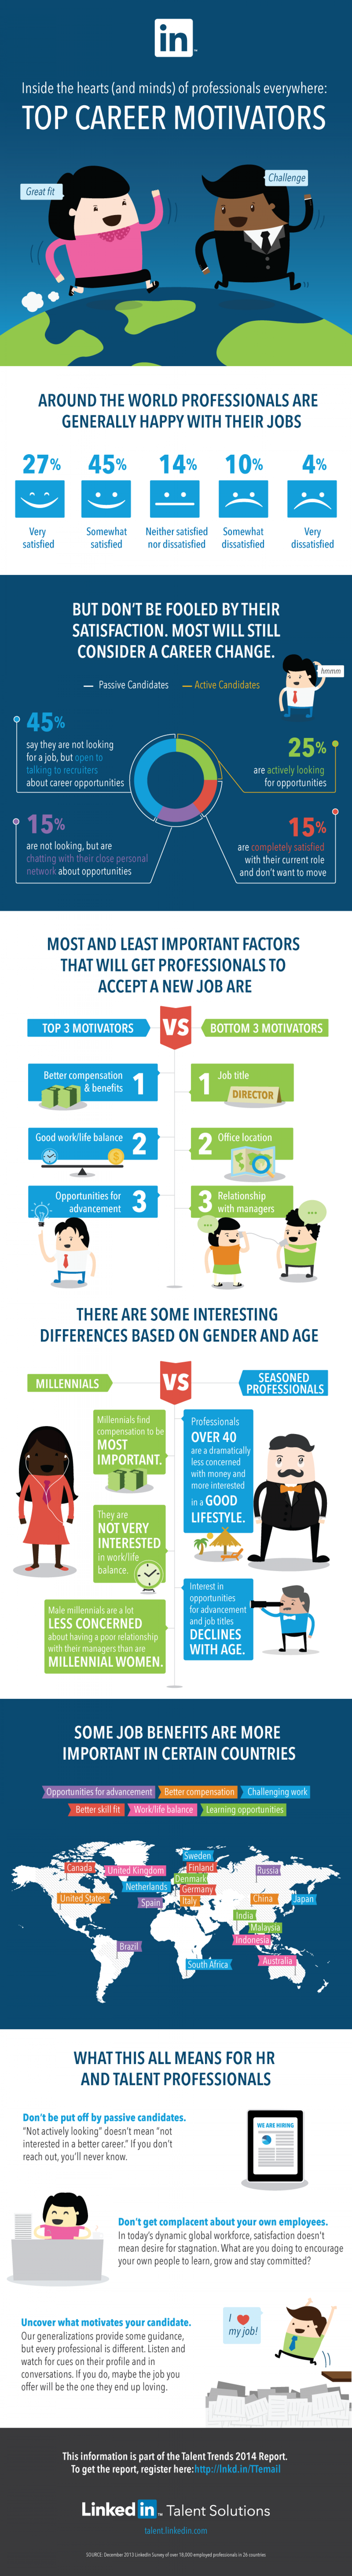 Inside the Hearts (and Minds) of Professionals Everywhere: Top Career Motivators Infographic